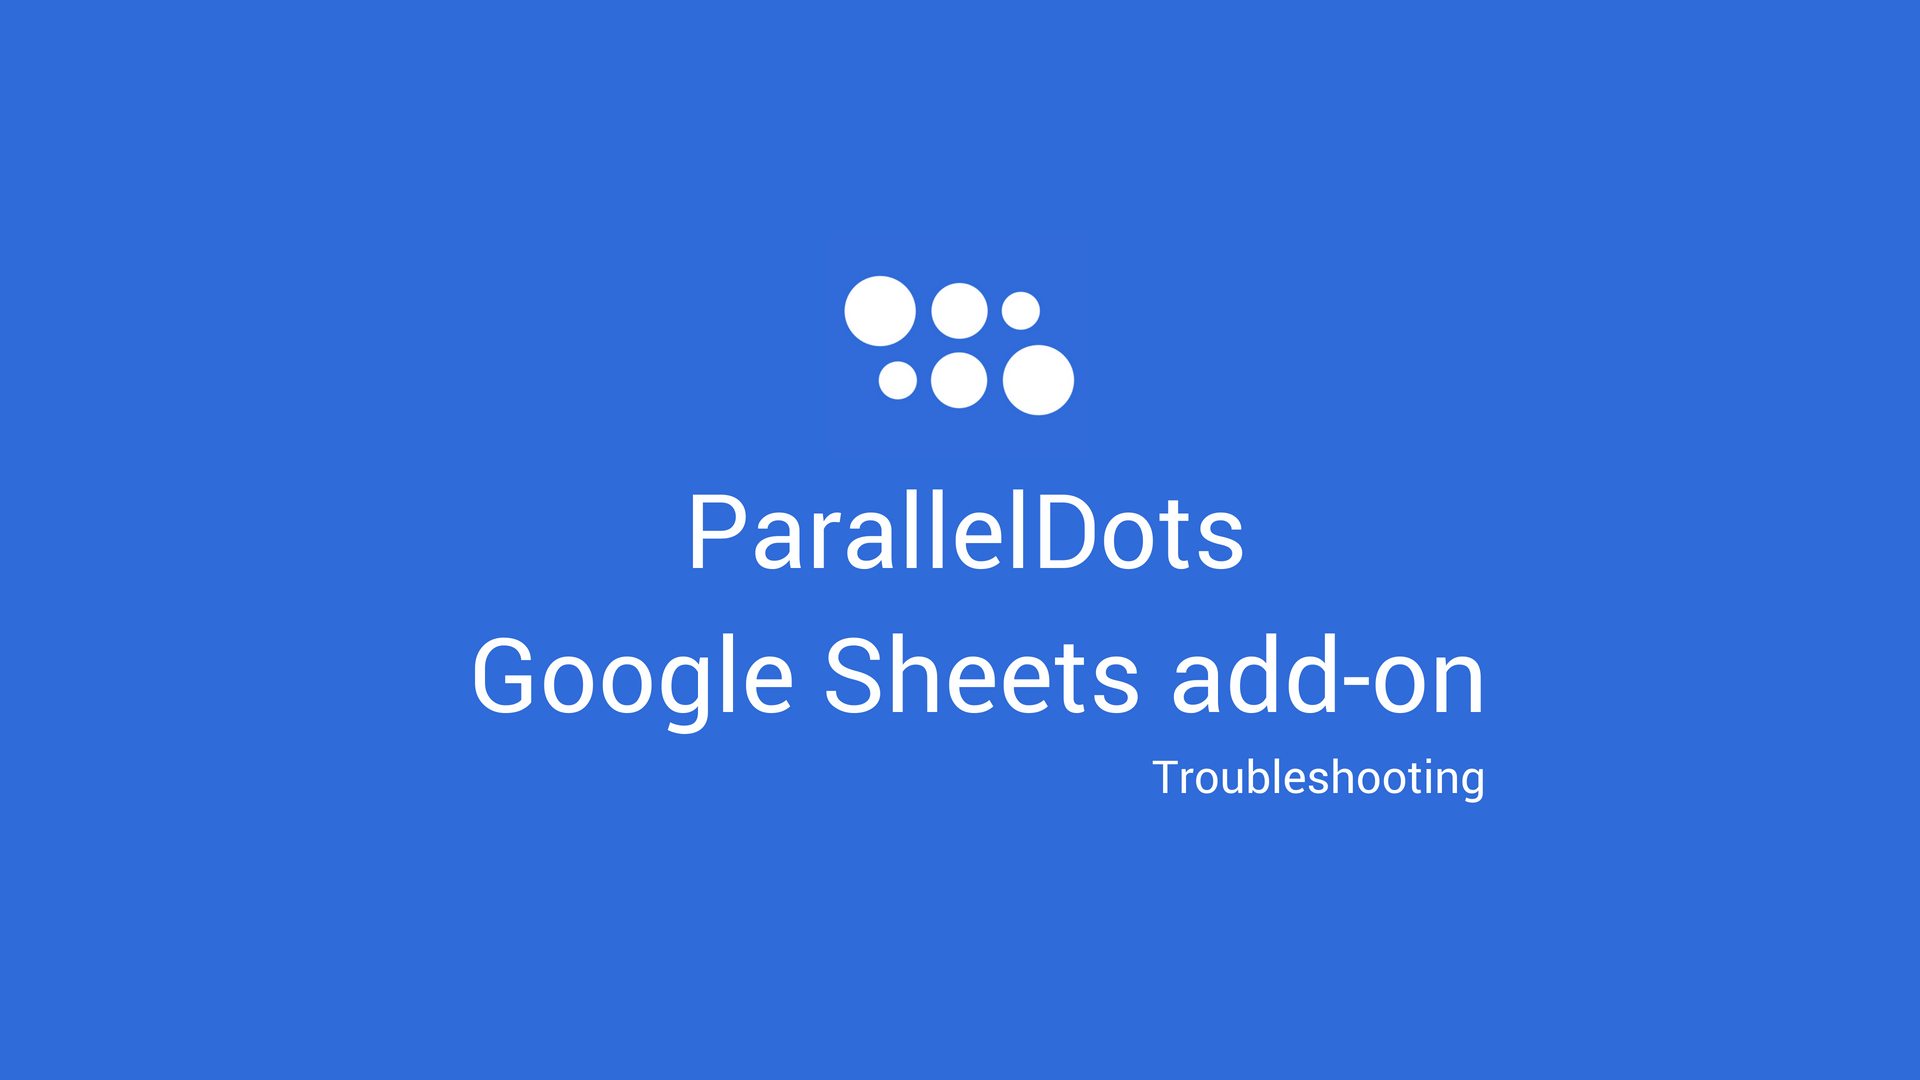 Google Sheets add-on